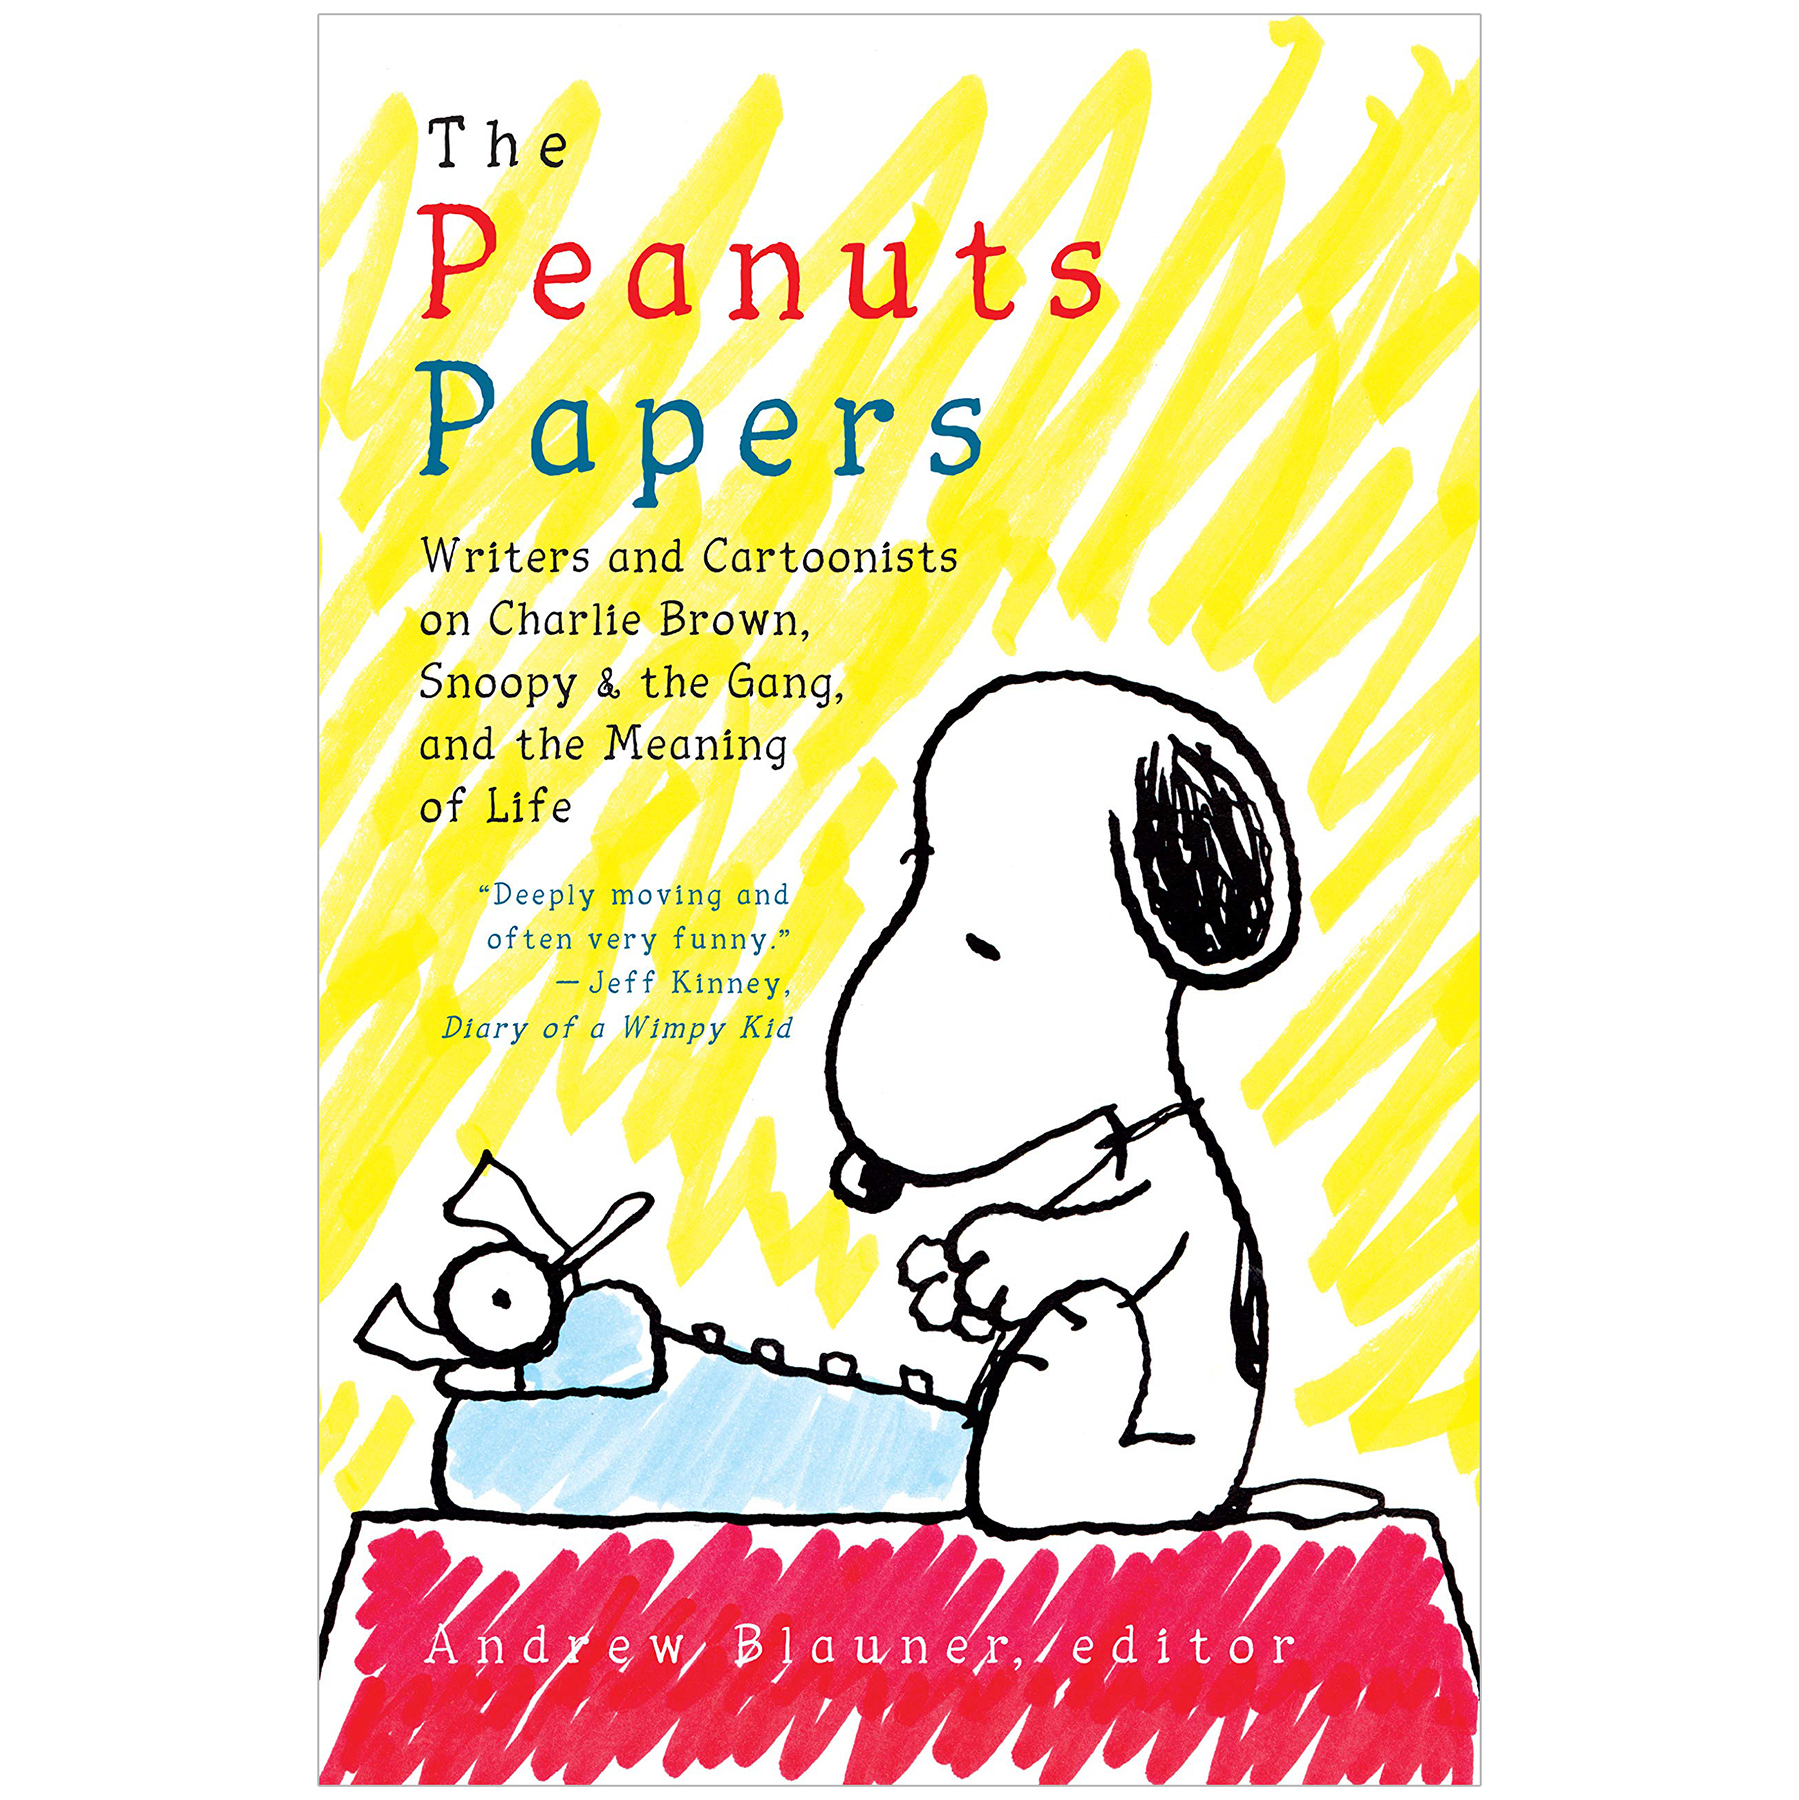 Best Christmas gifts 2019 - The Peanuts Papers: Writers and Cartoonists on Charlie Brown, Snoopy & the Gang, and the Meaning of Life: A Library of America Special Publication by Andrew Blauner